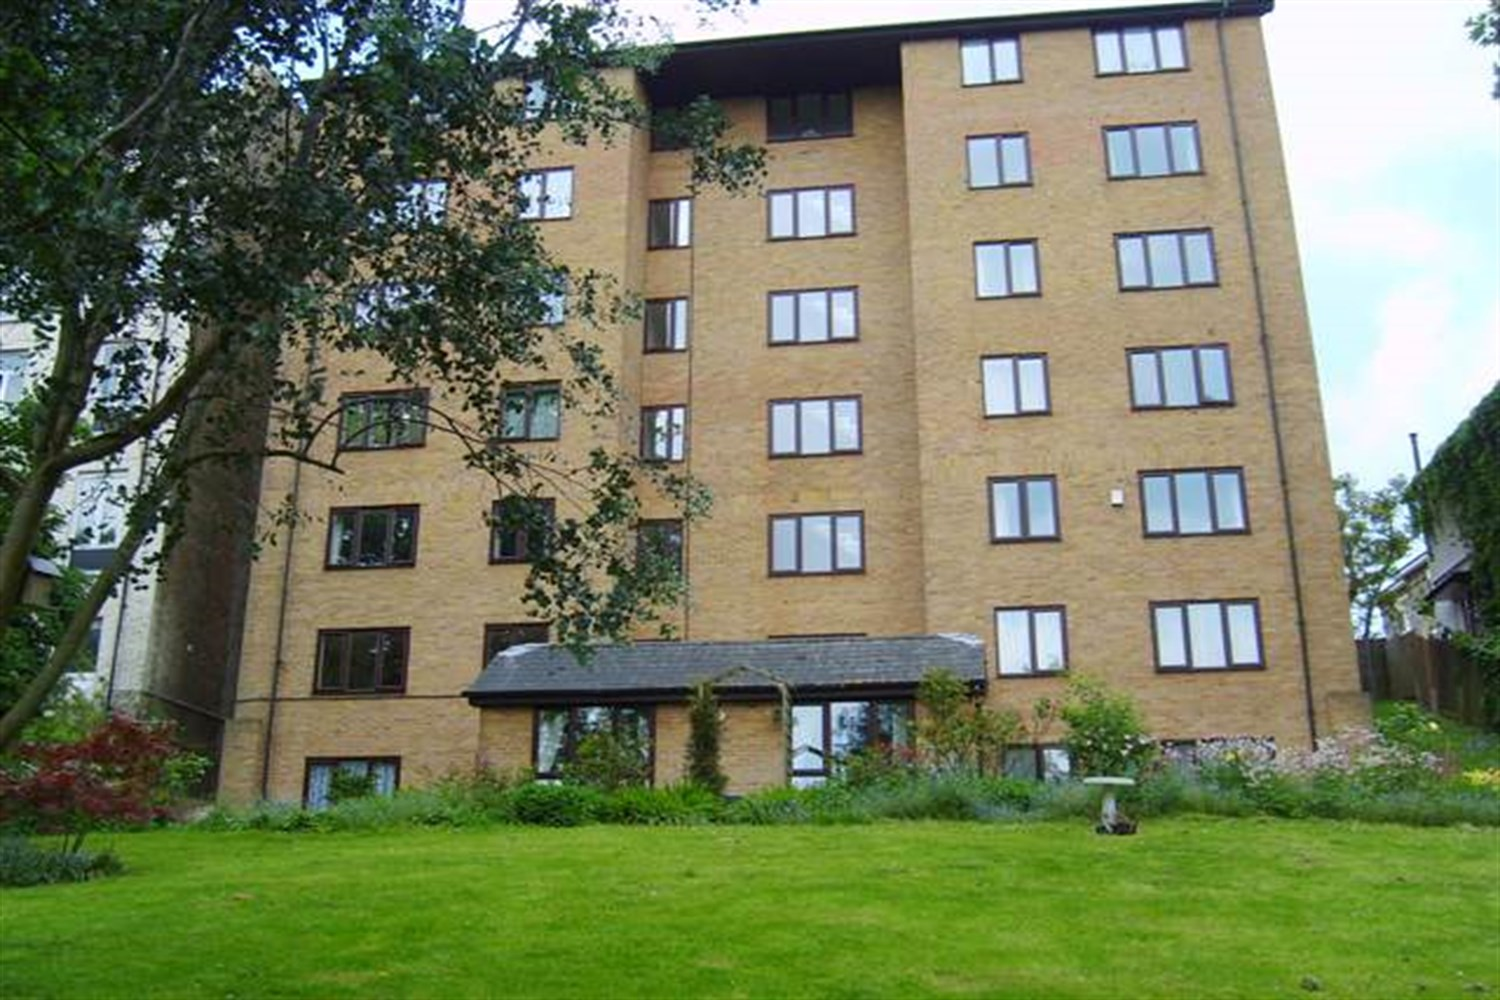 Crystal Palace, Greater London 1 bedroom to let